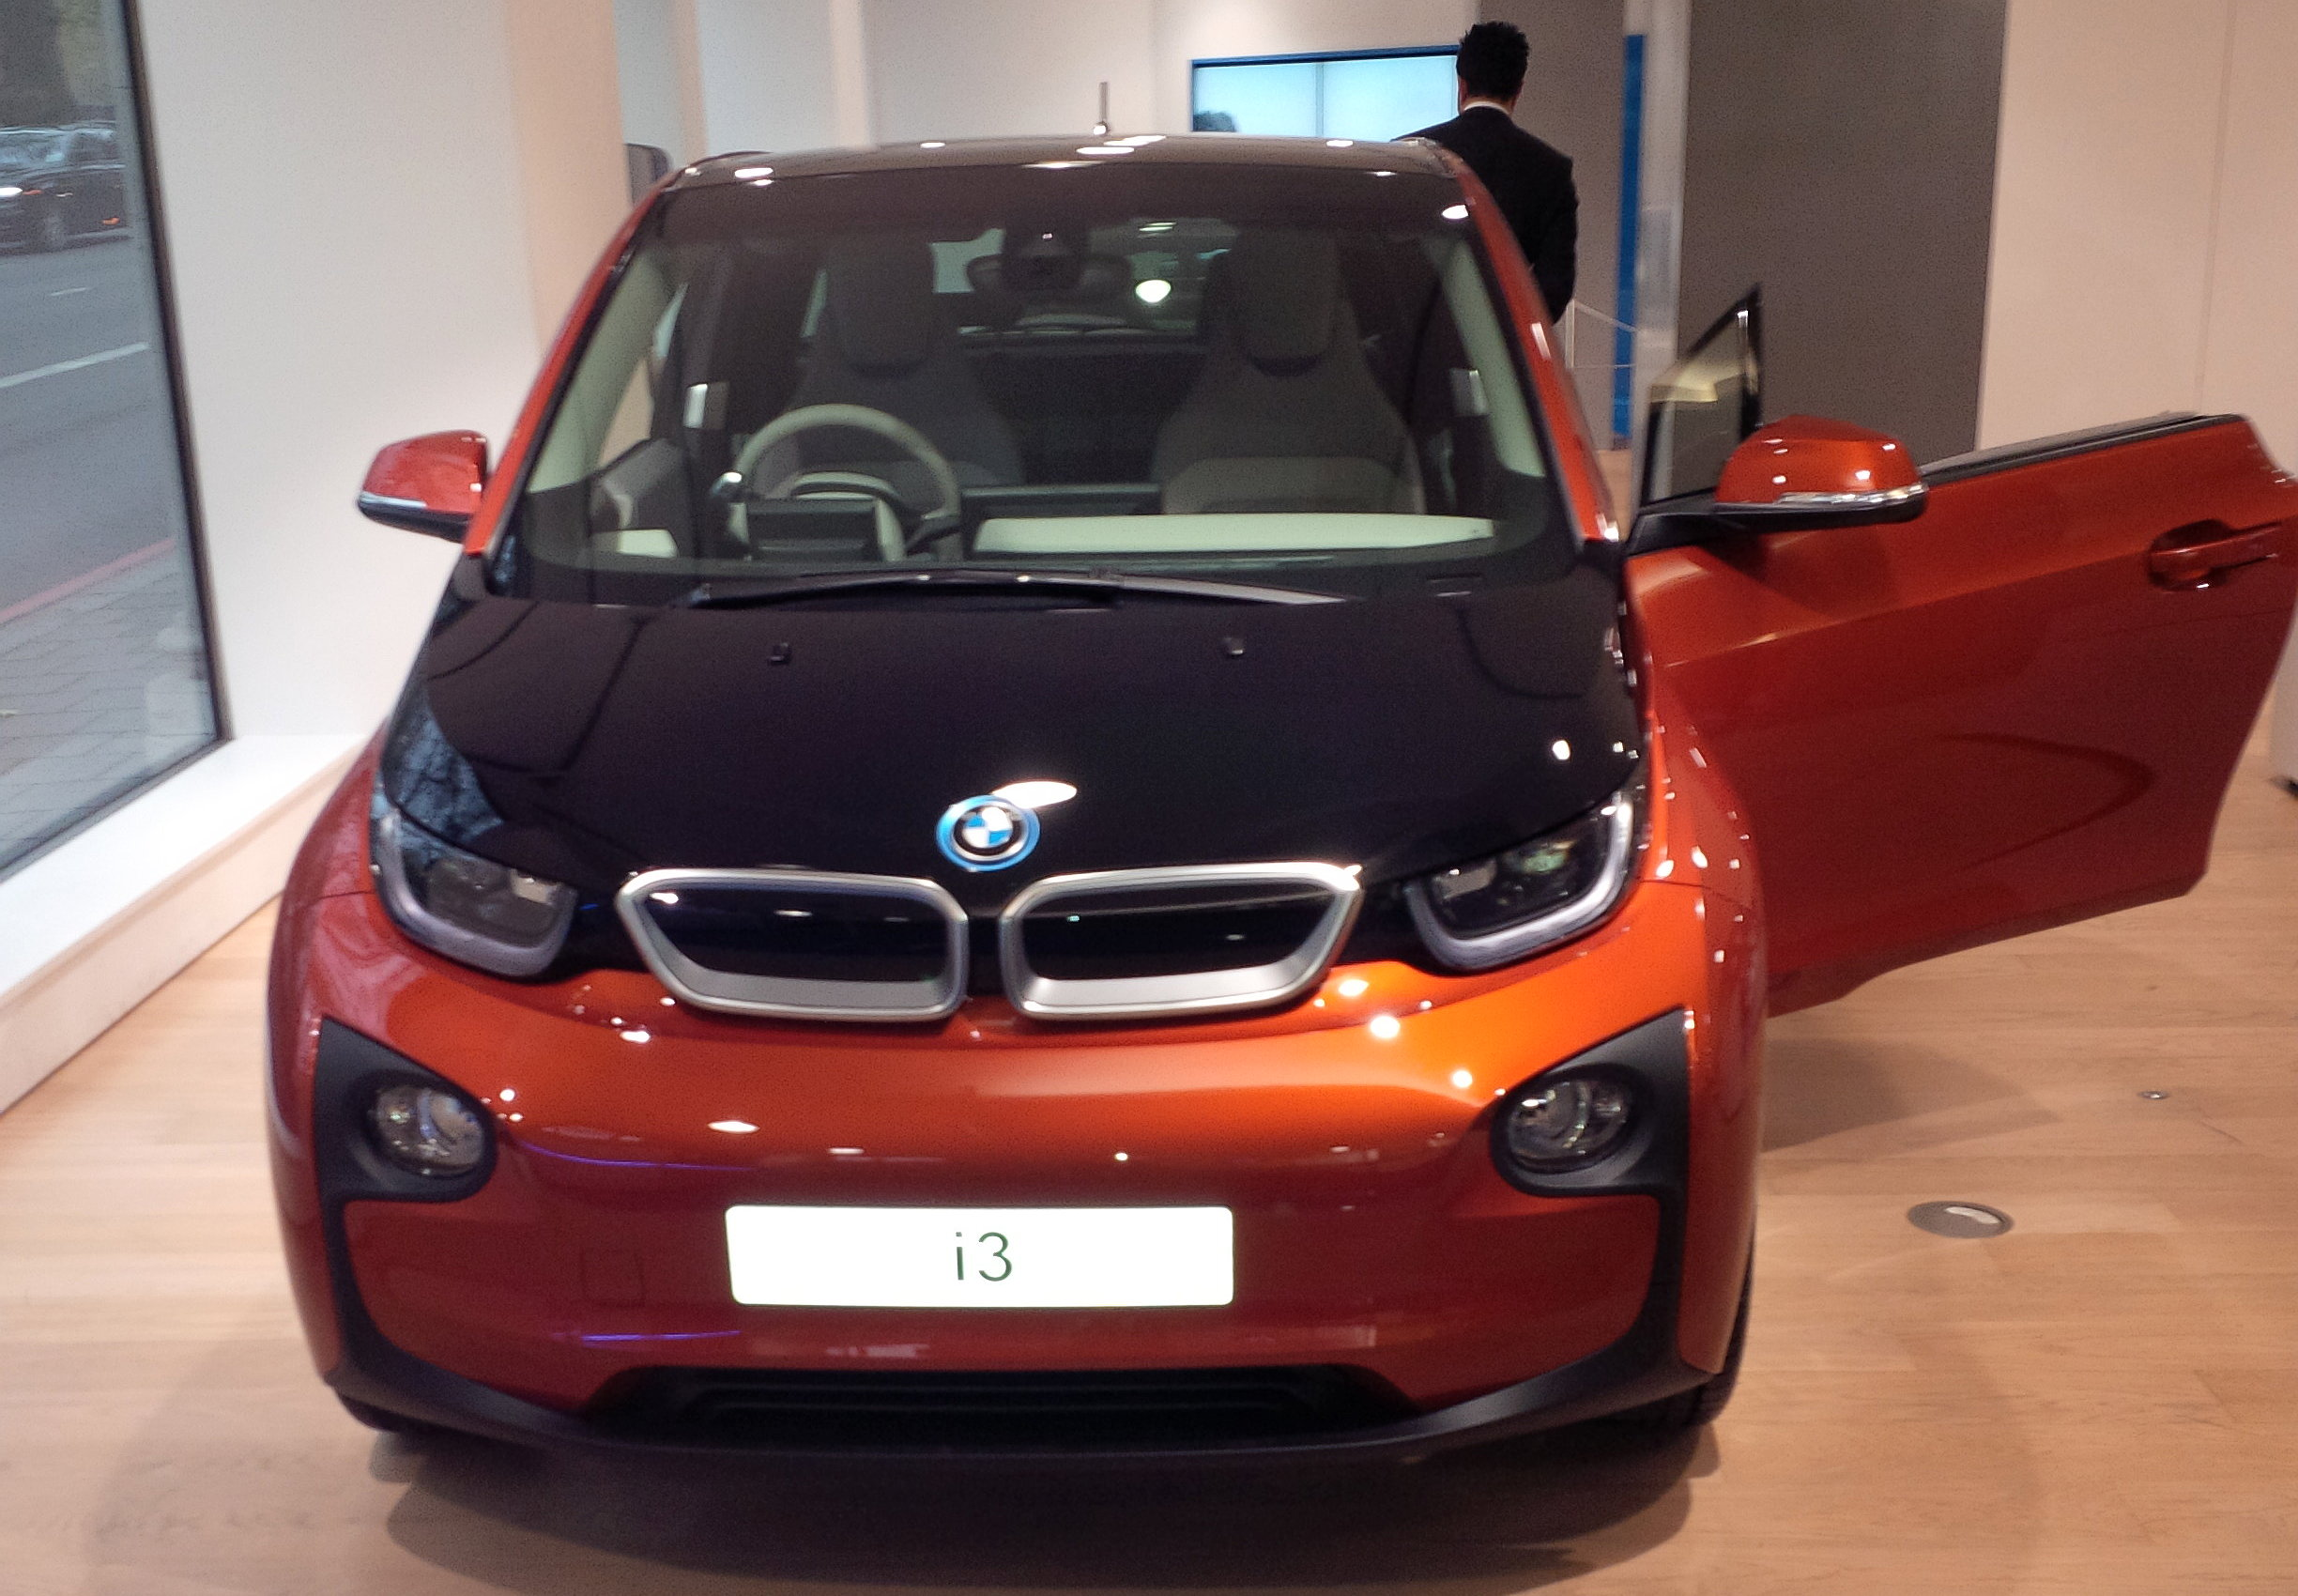 BMW i3 Electric Car Exterior